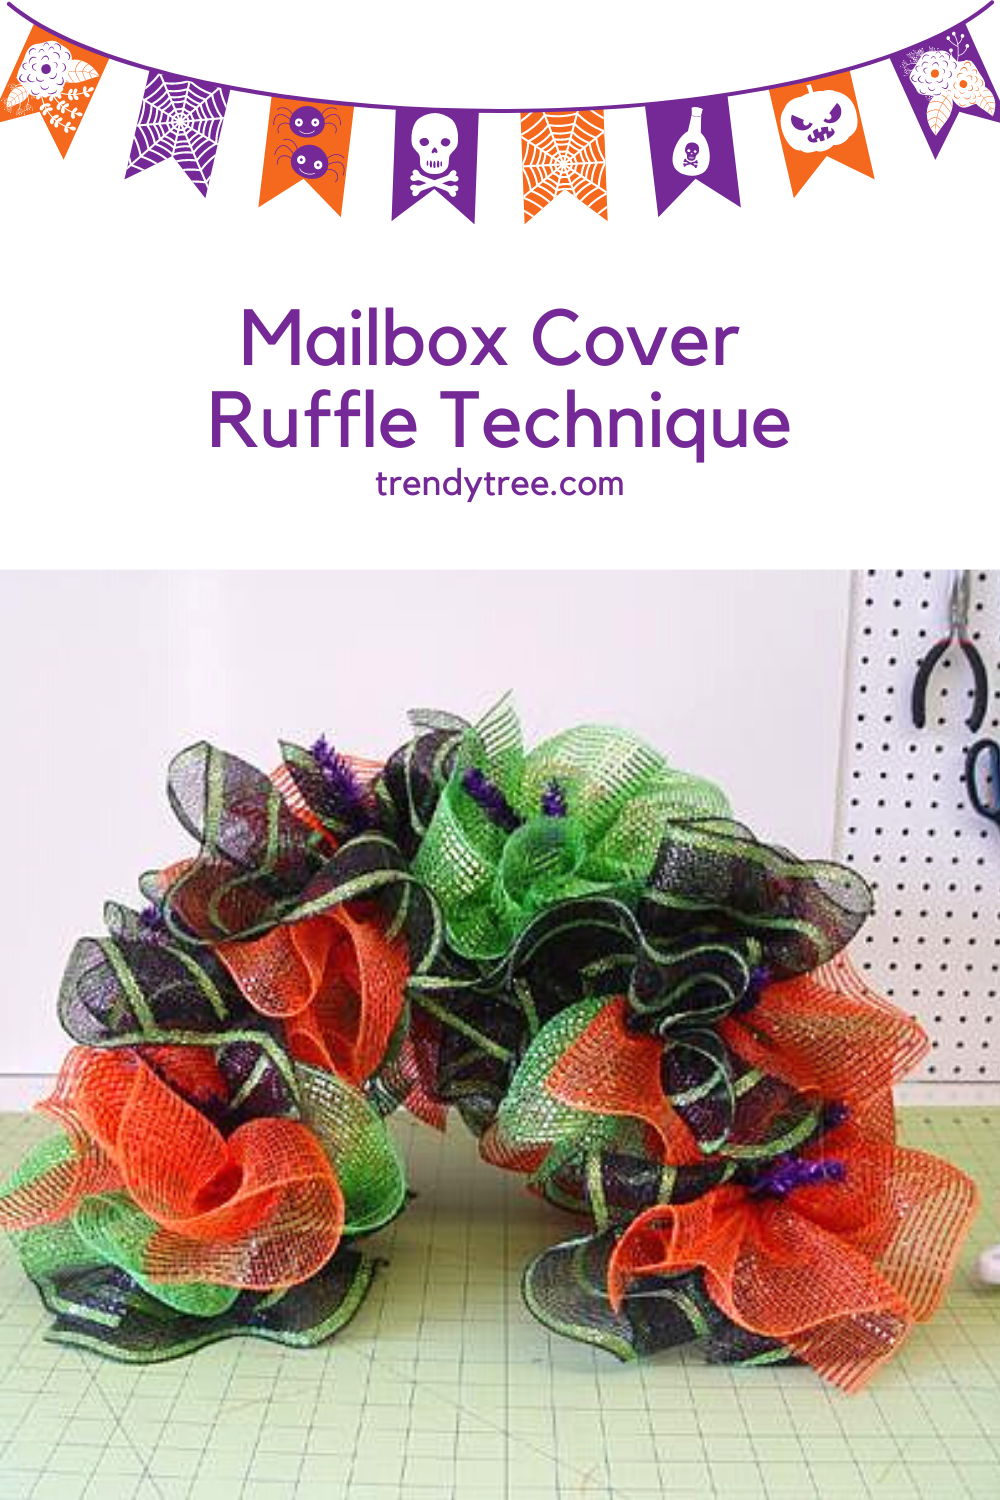 Deco Mesh Mailbox cover, supplies from Trendy Tree